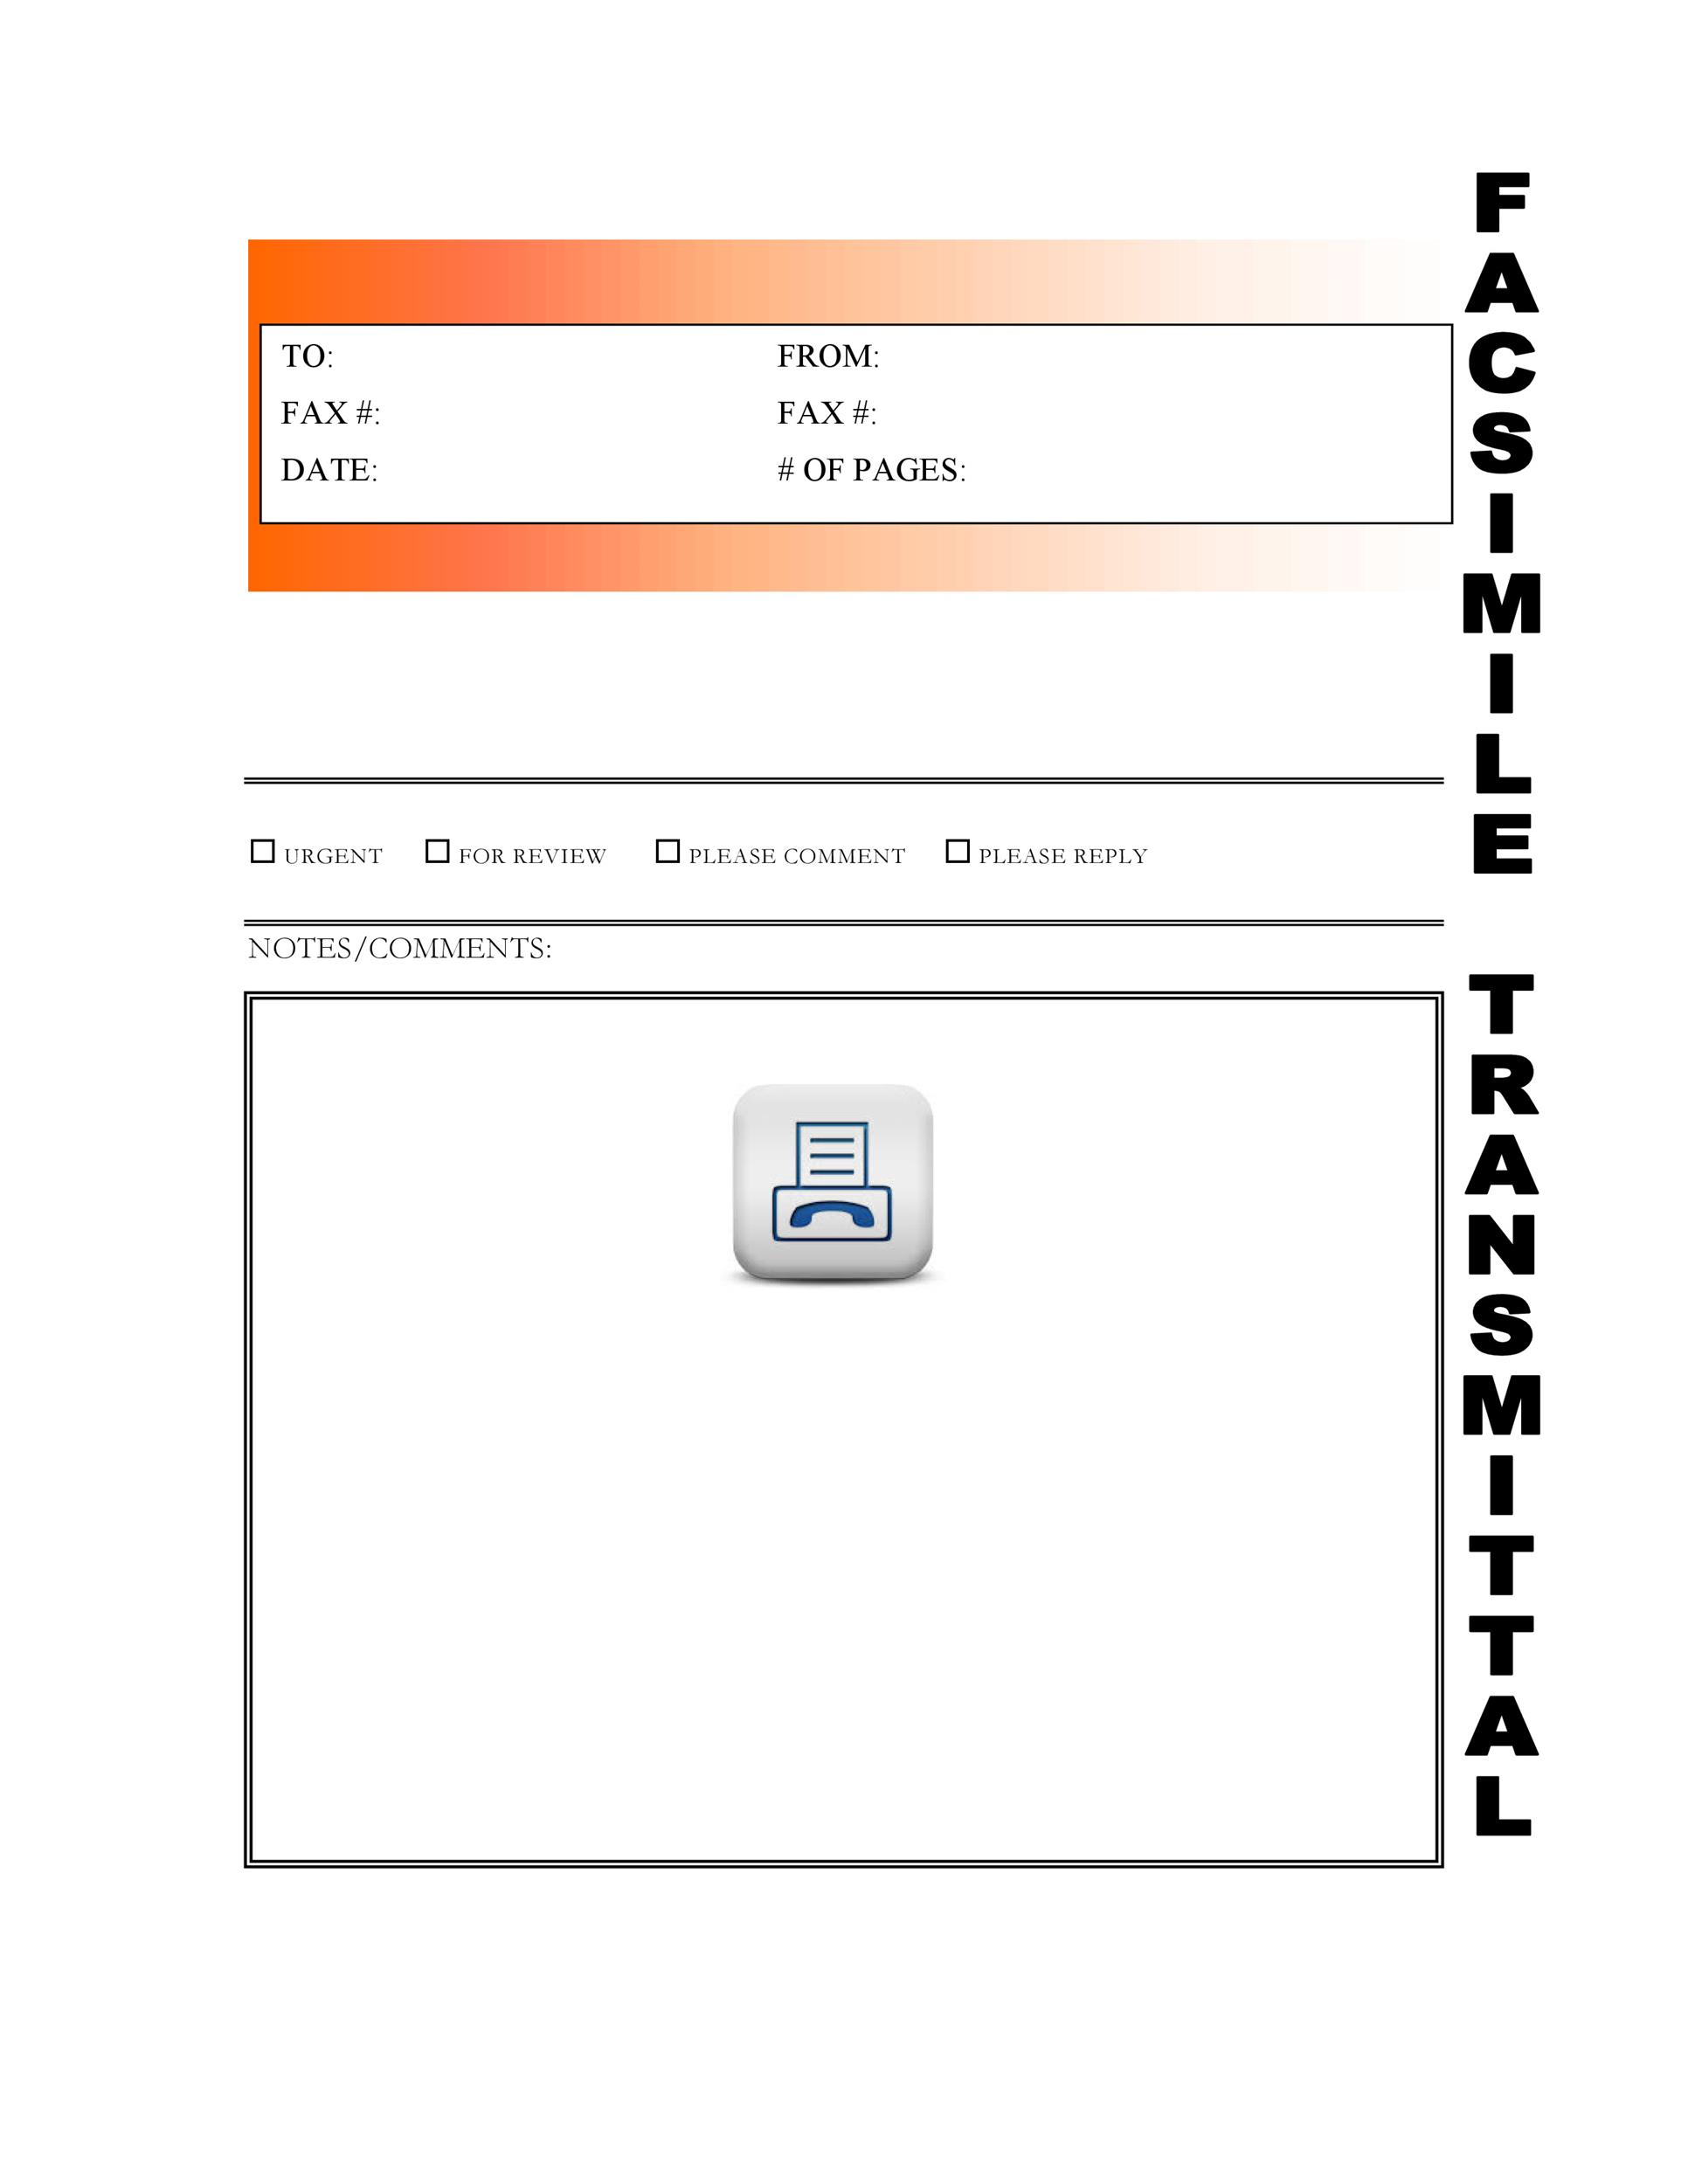 Sample Generic Fax Cover Sheet Free Sample Fax Cover Sheet Template